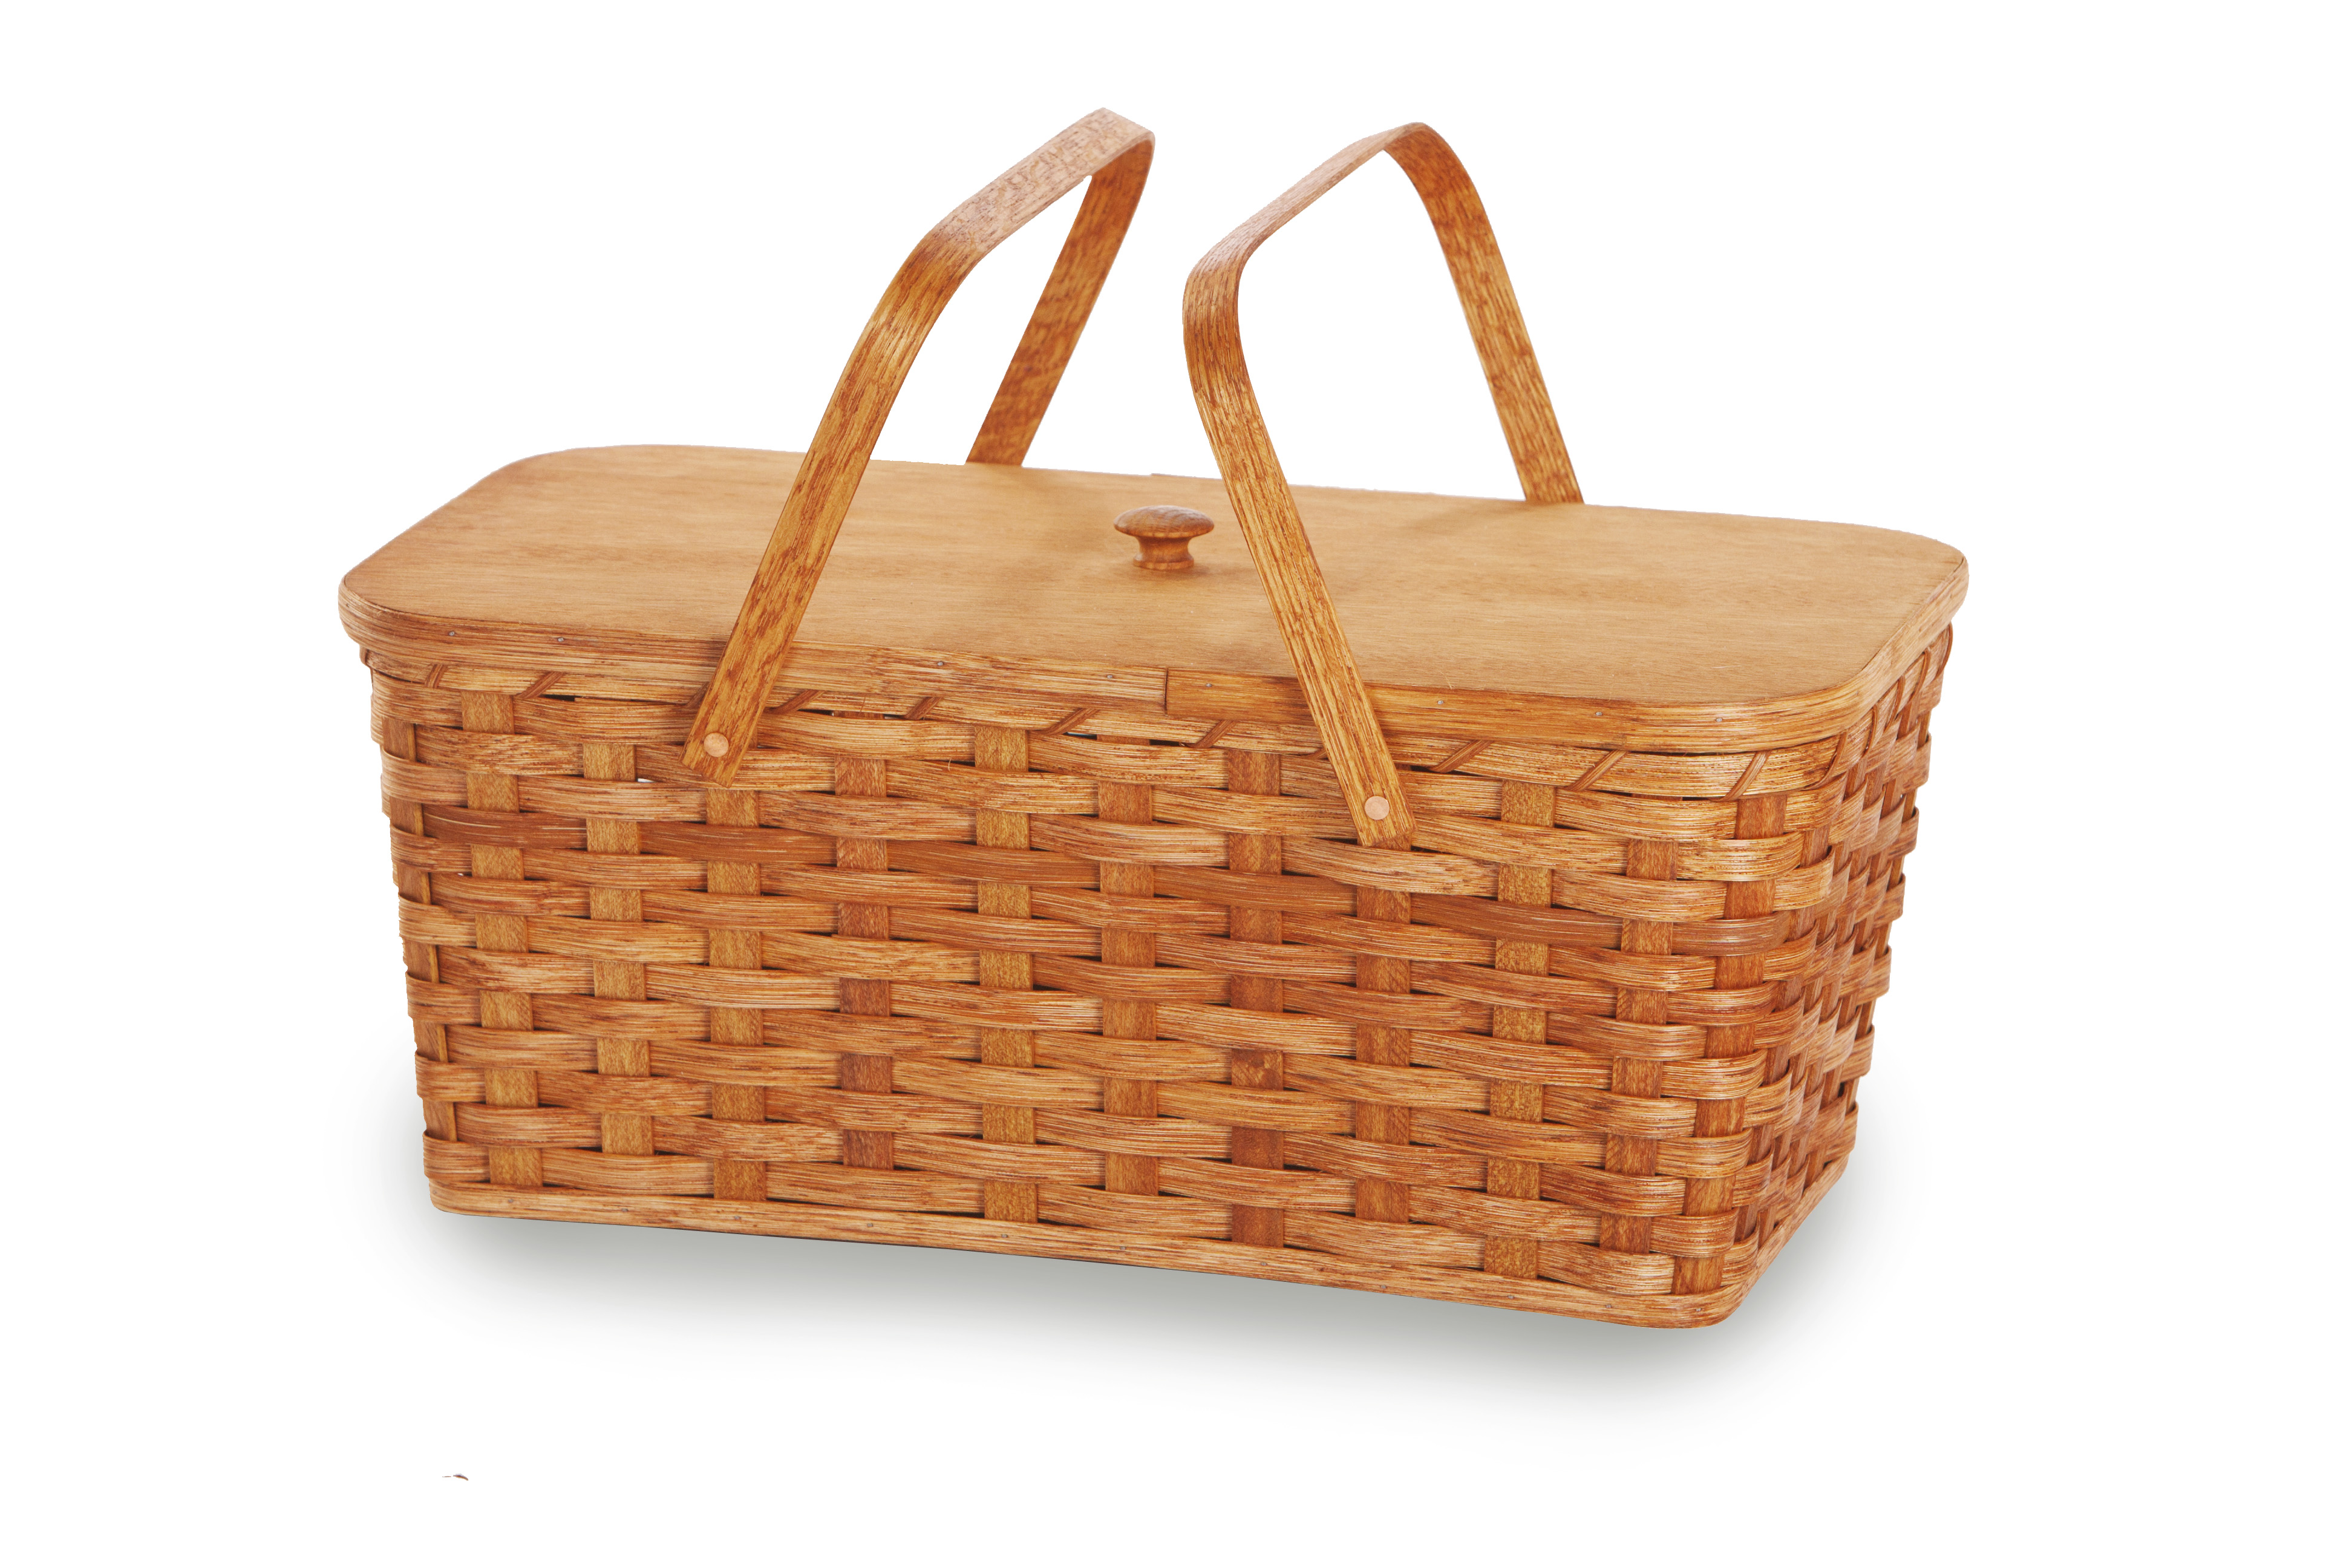 High Quality Empty Picnic Baskets | 30 Day Guarantee ...